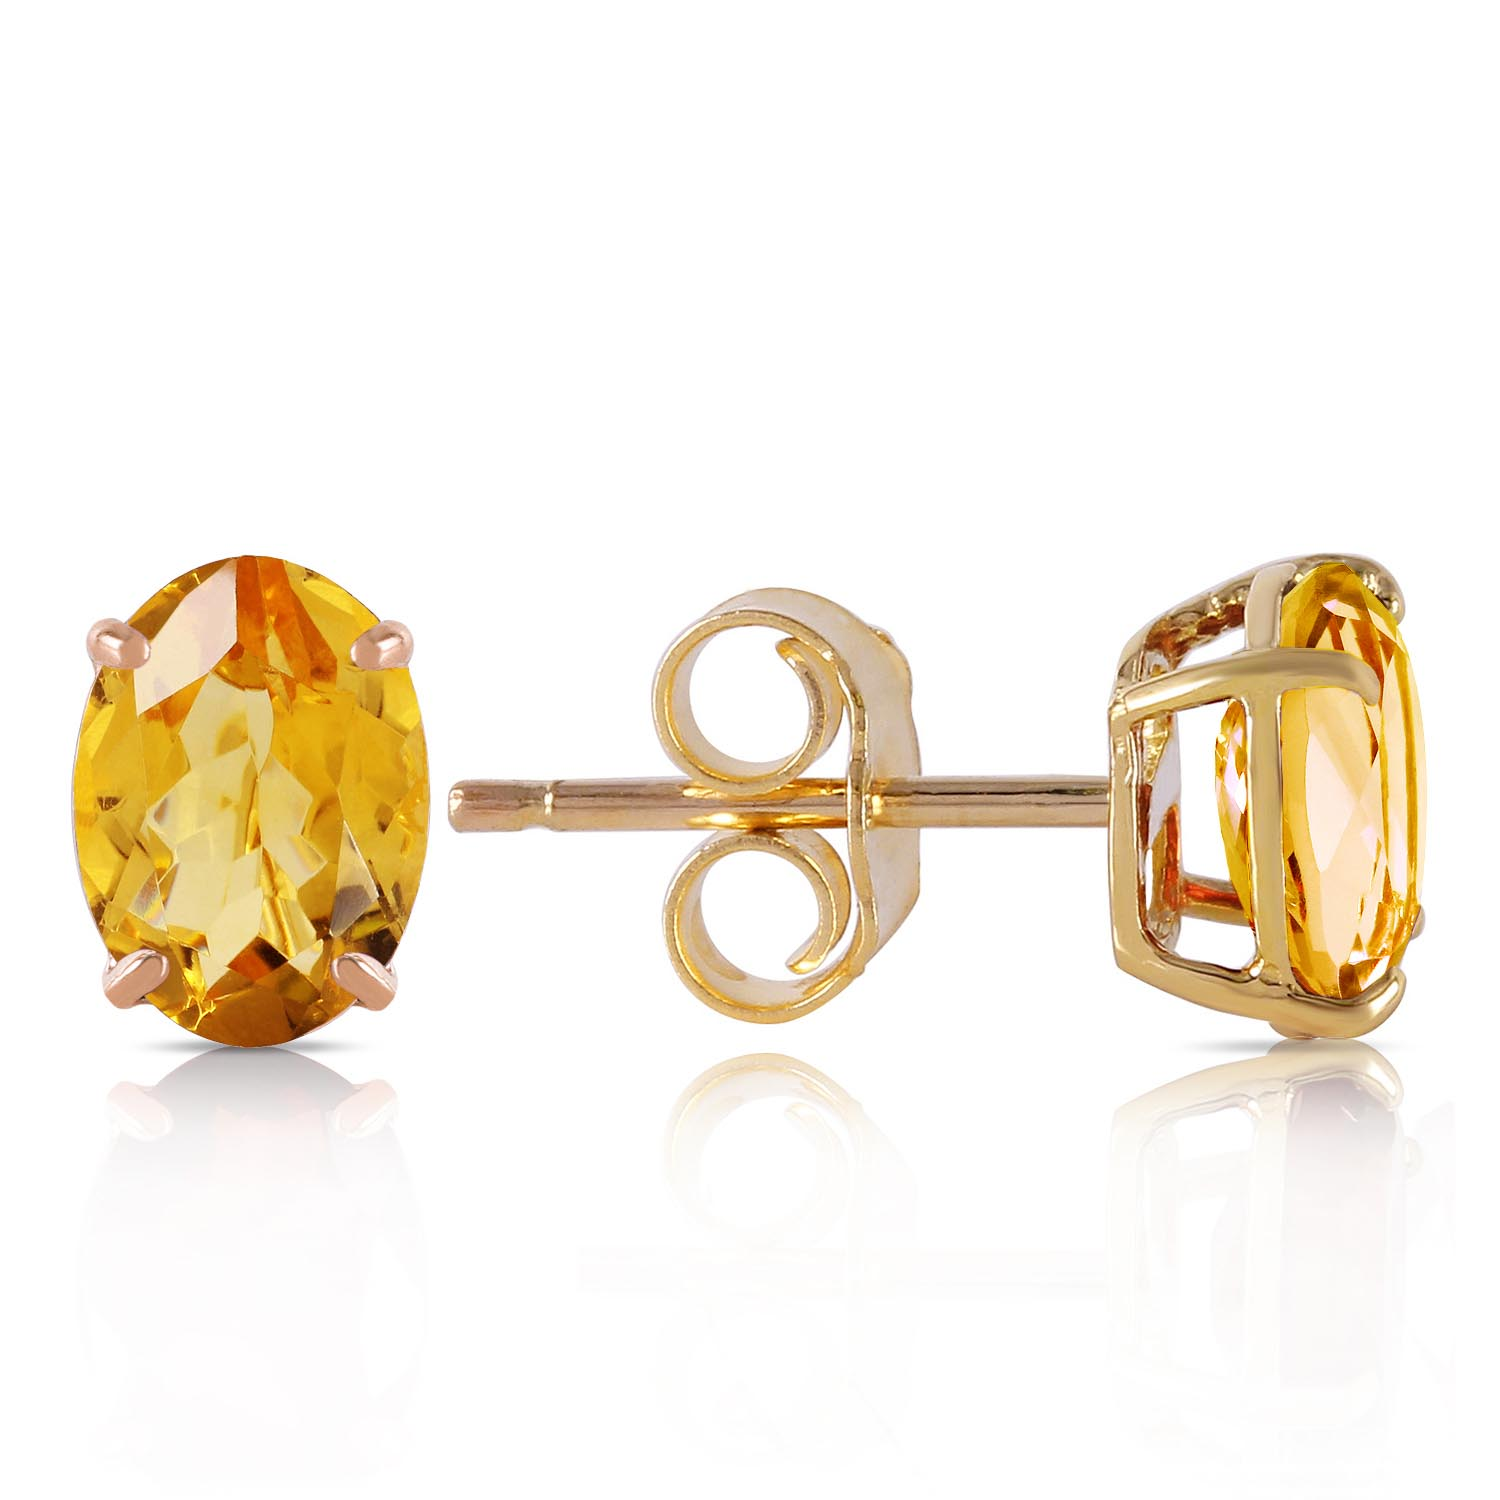 Citrine Stud Earrings 1.8ctw in 9ct Gold